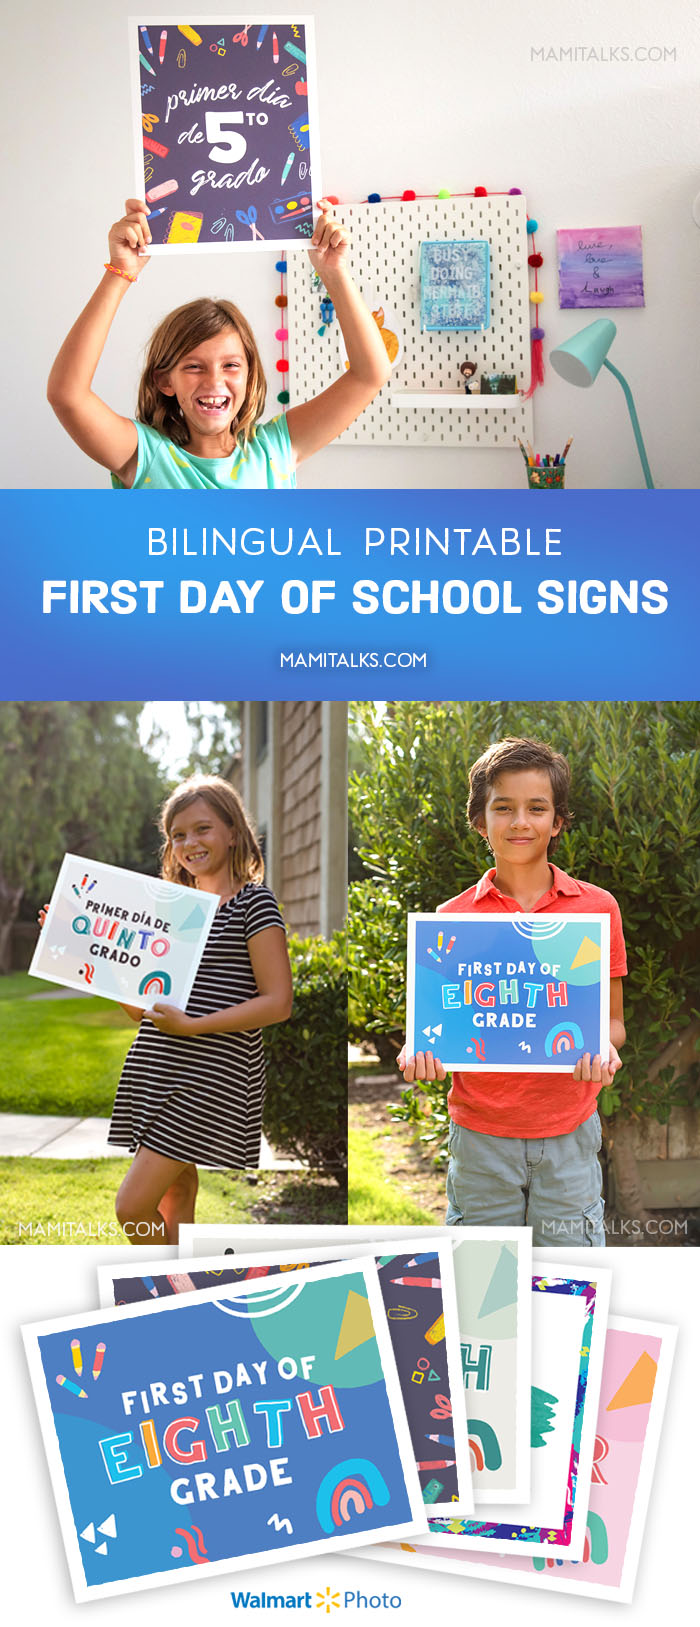 First day of school signs with kids showing them, MamiTalks.com